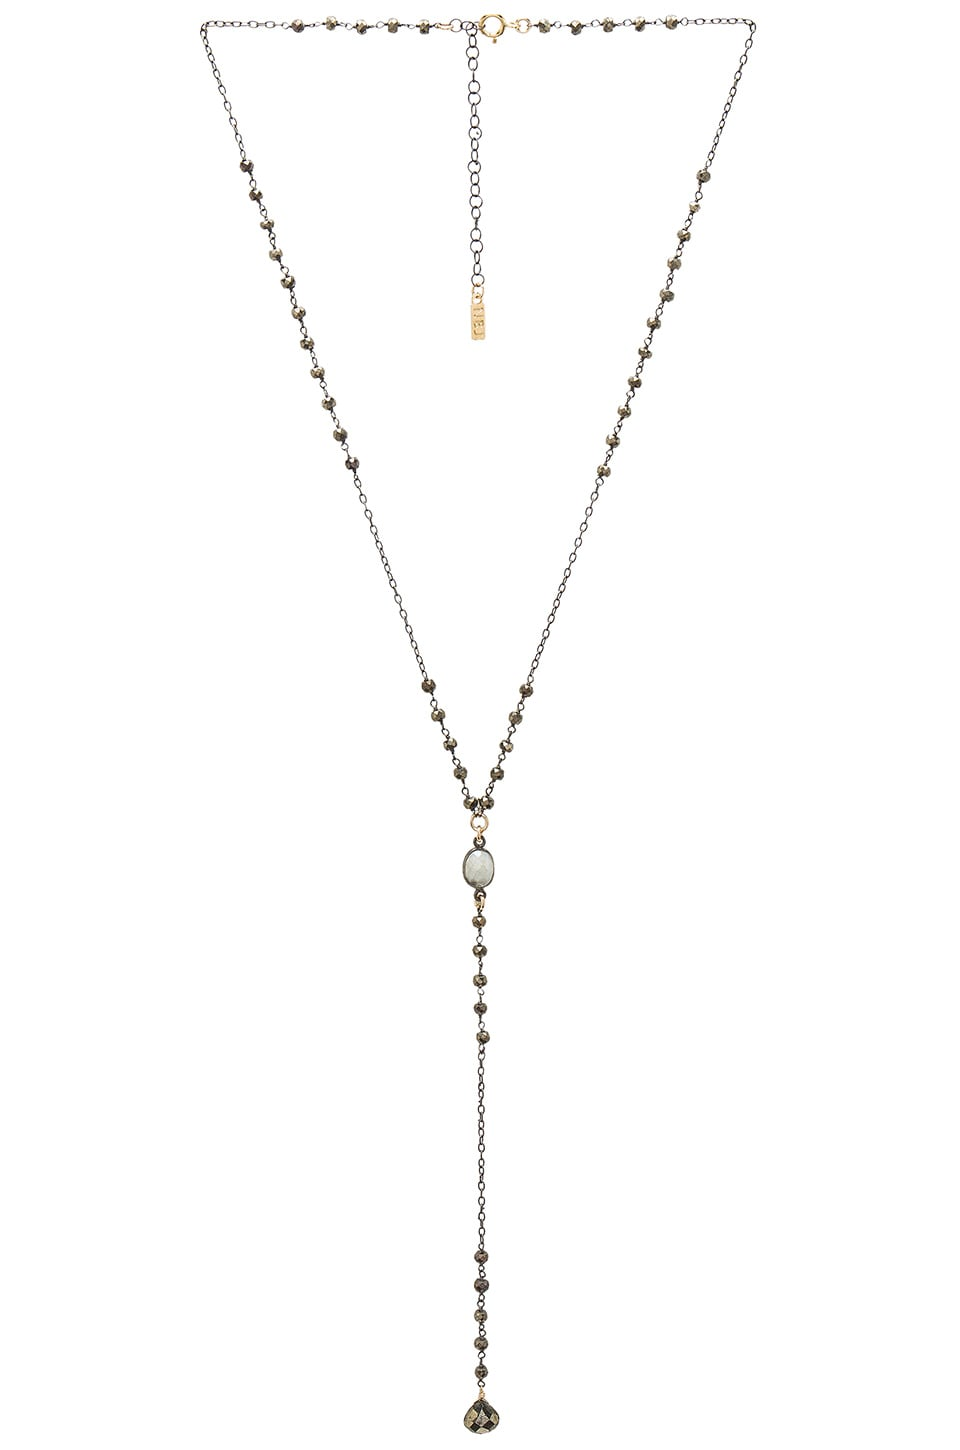 Natalie B Jewelry Stevie Lariat in Pyrite & Silver